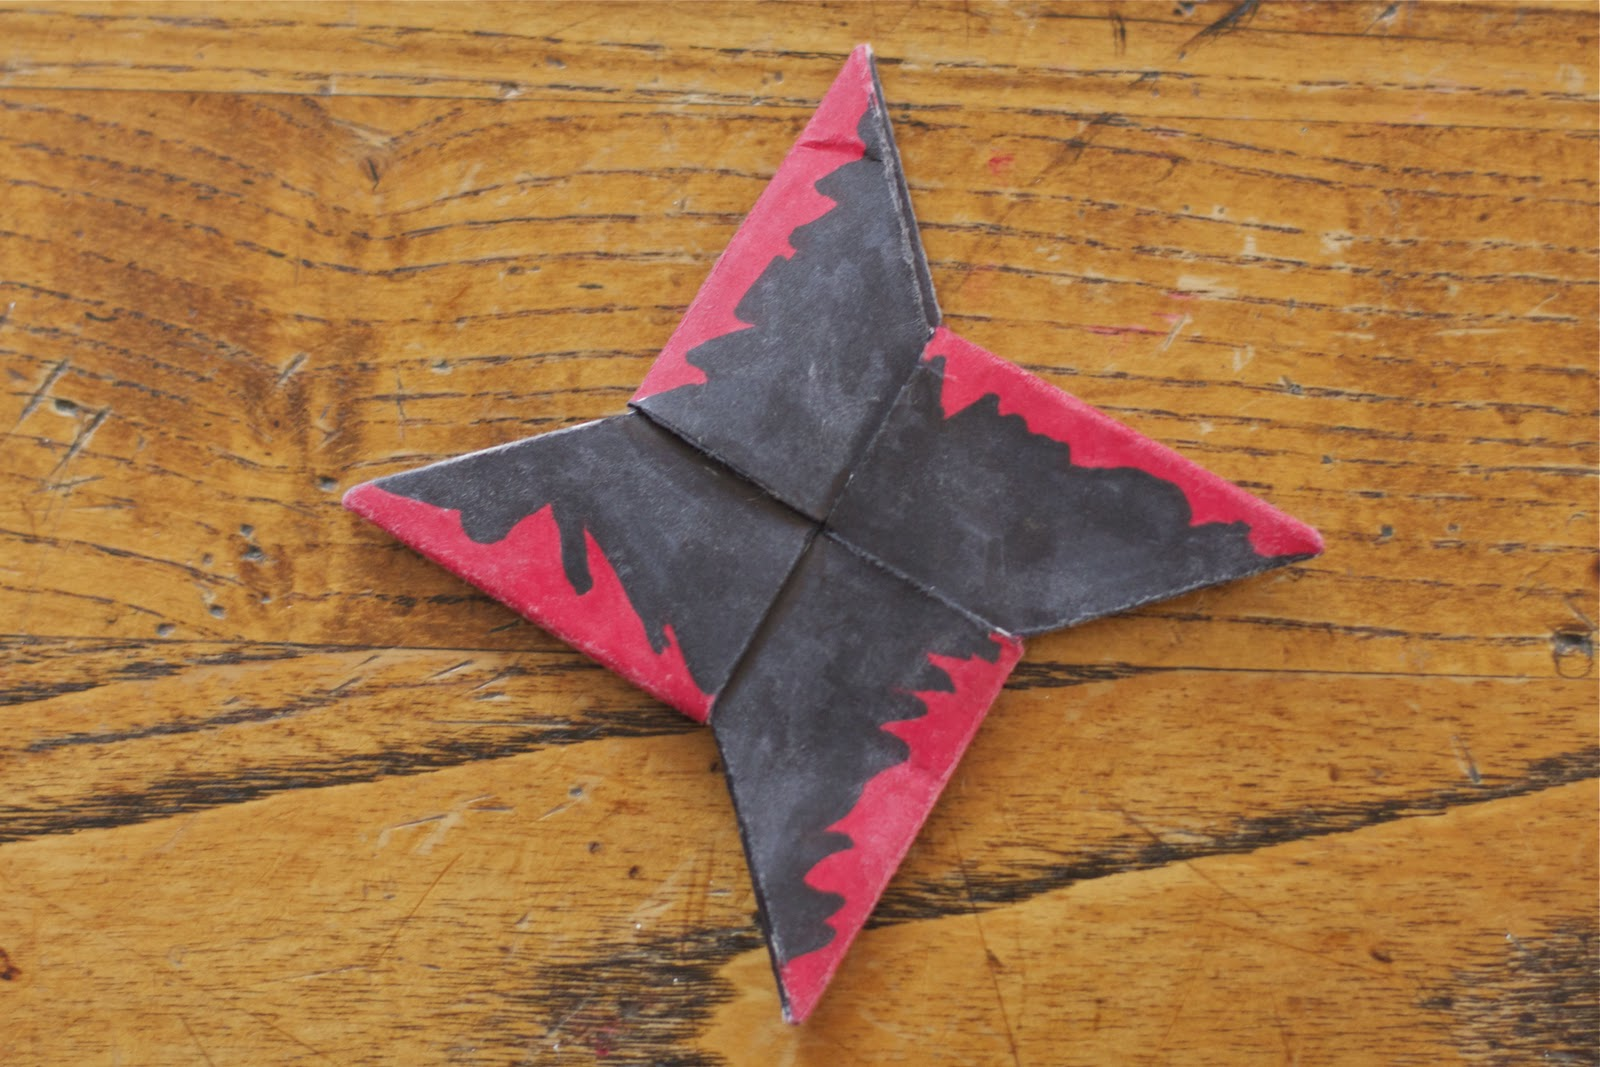 How To Make A Paper Ninja Throwing Star